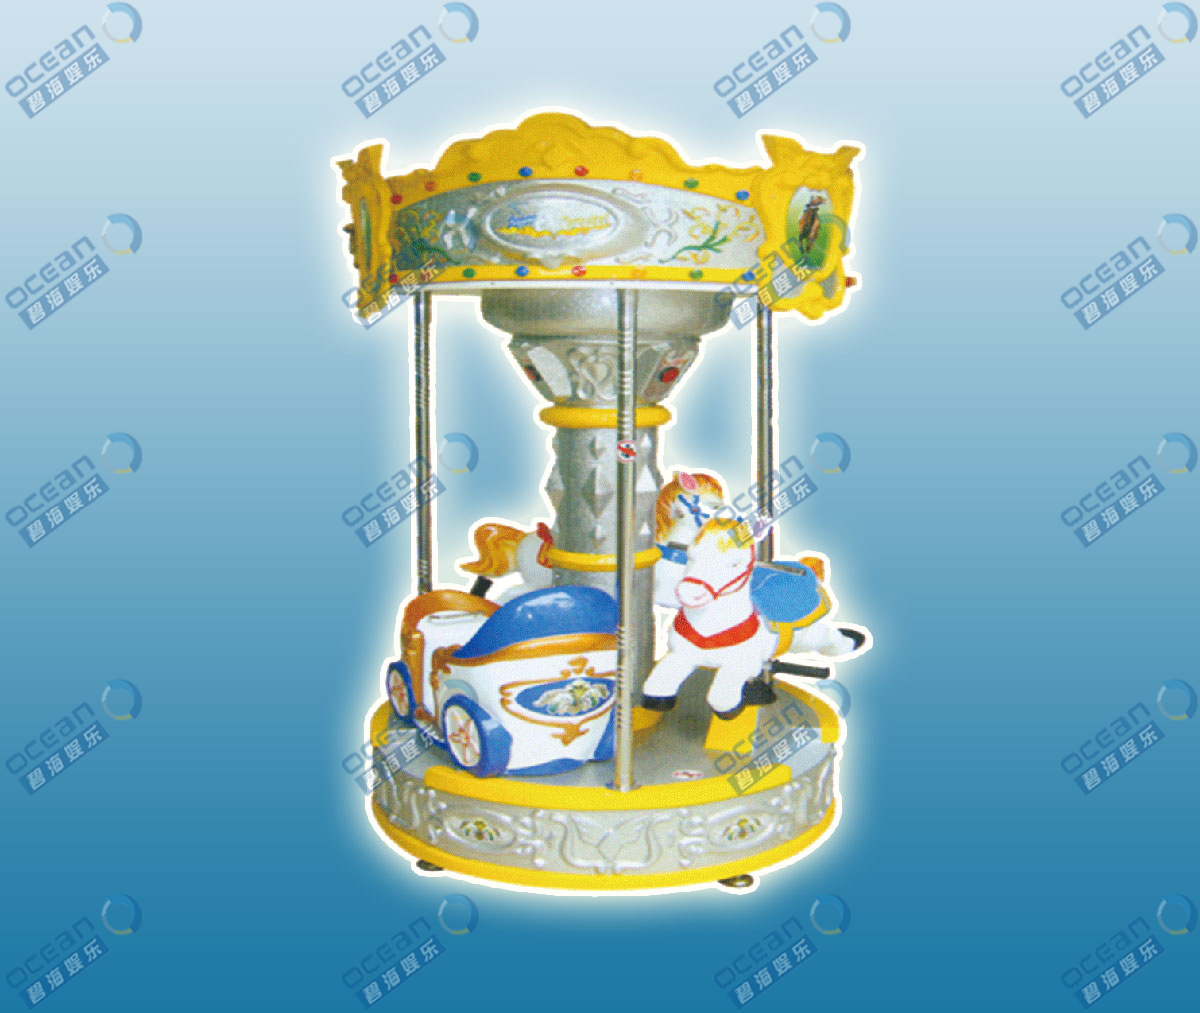 Machinery Ride-BH802 Little Carousel